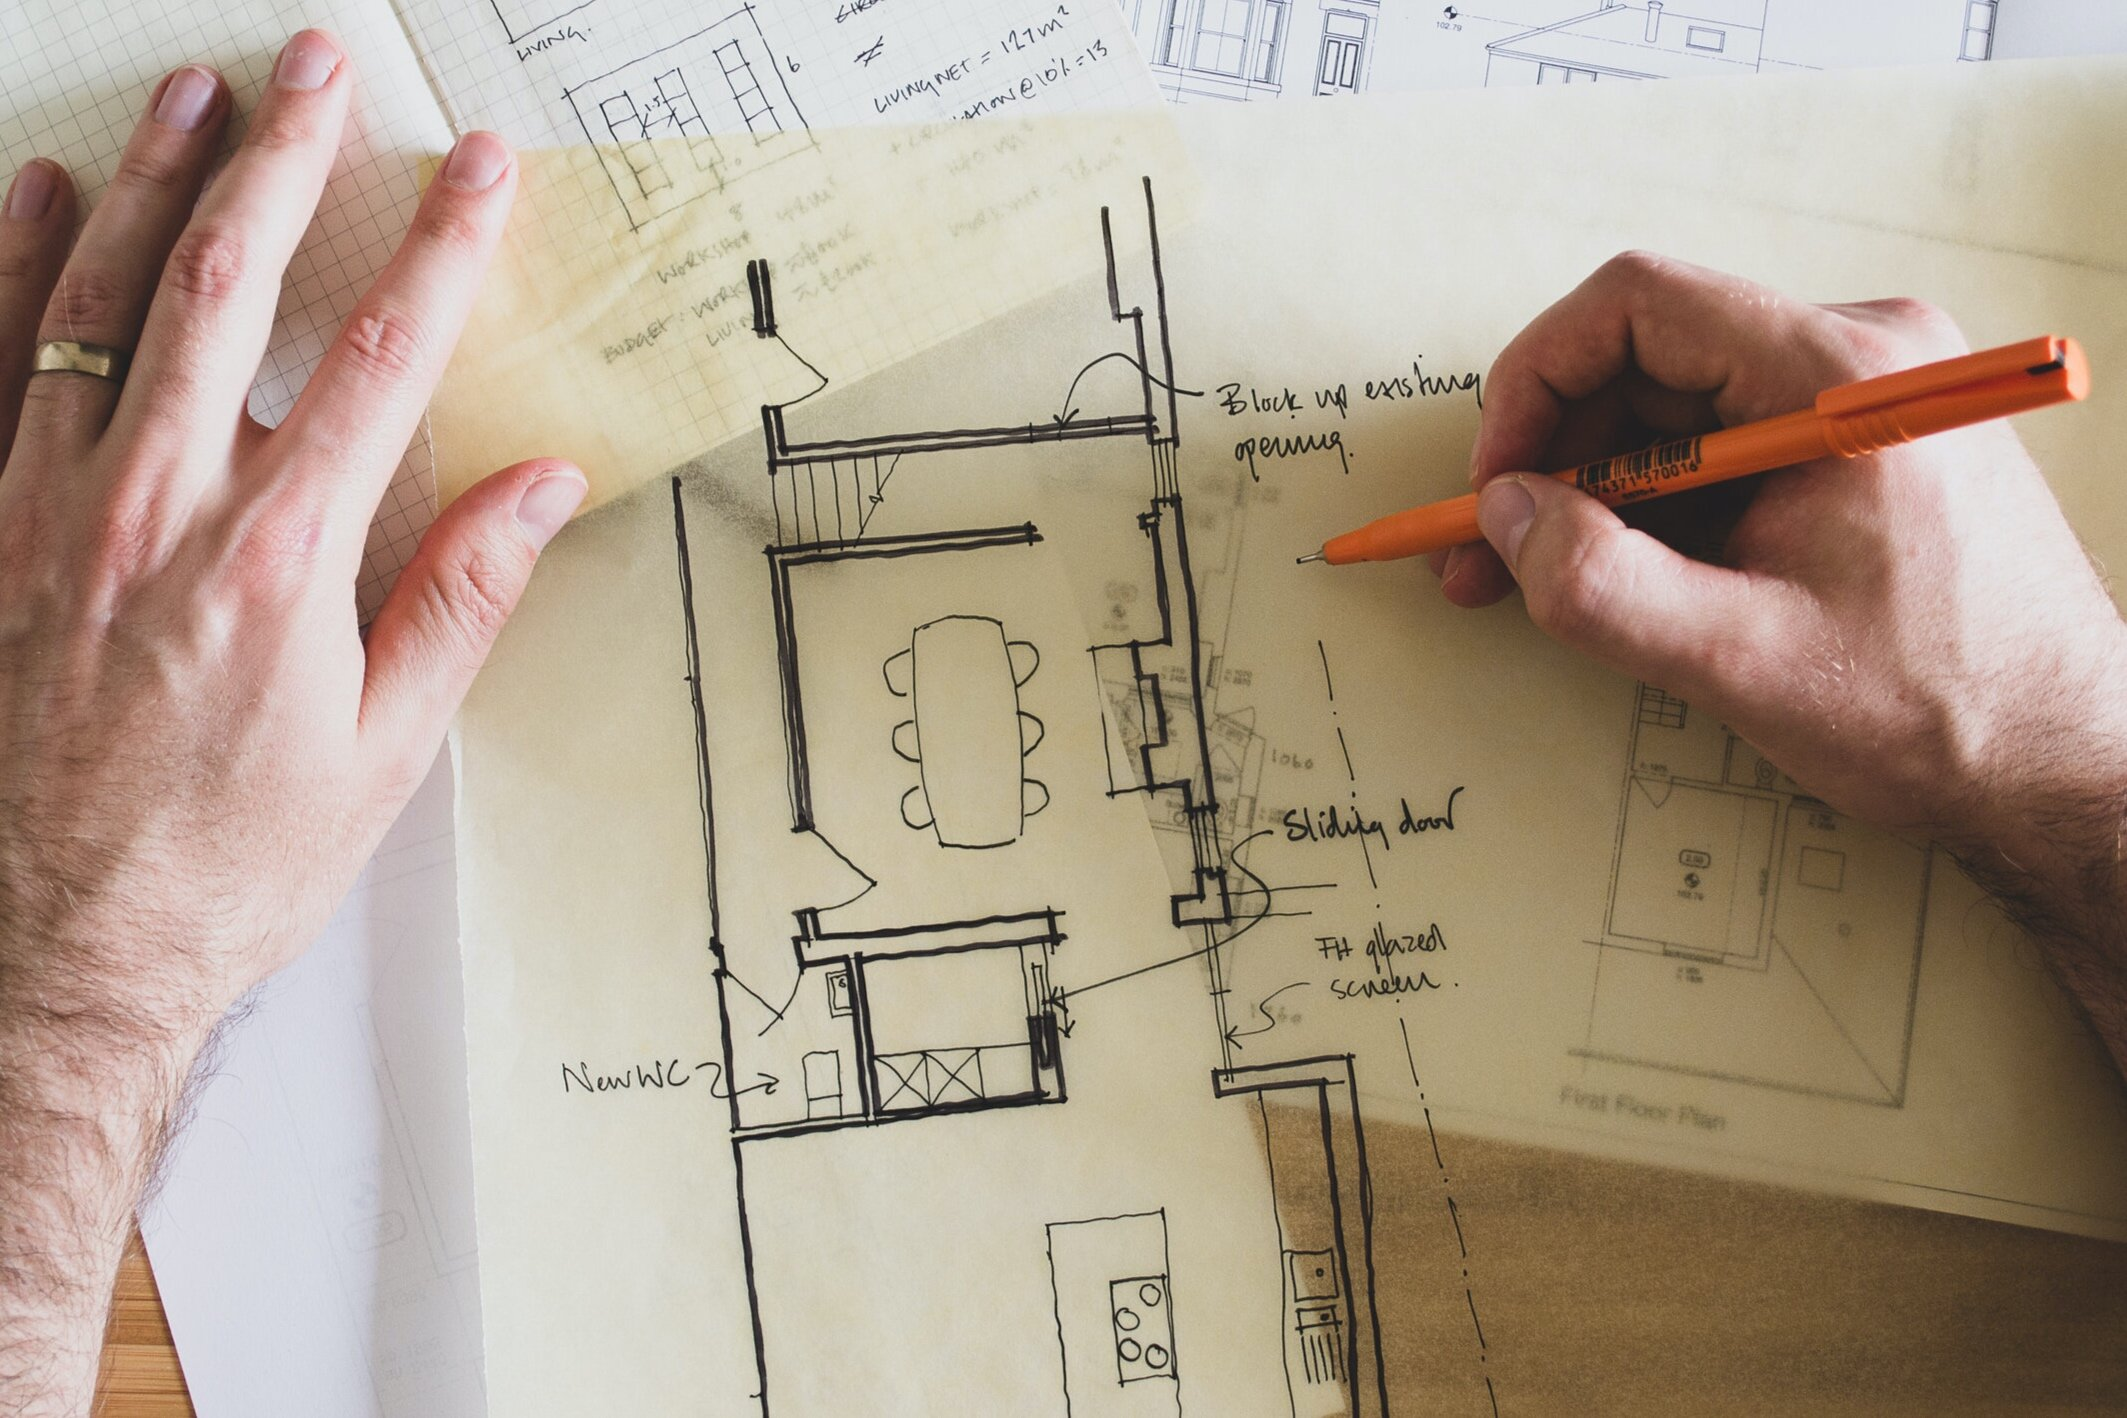 Architect's drawings and plans